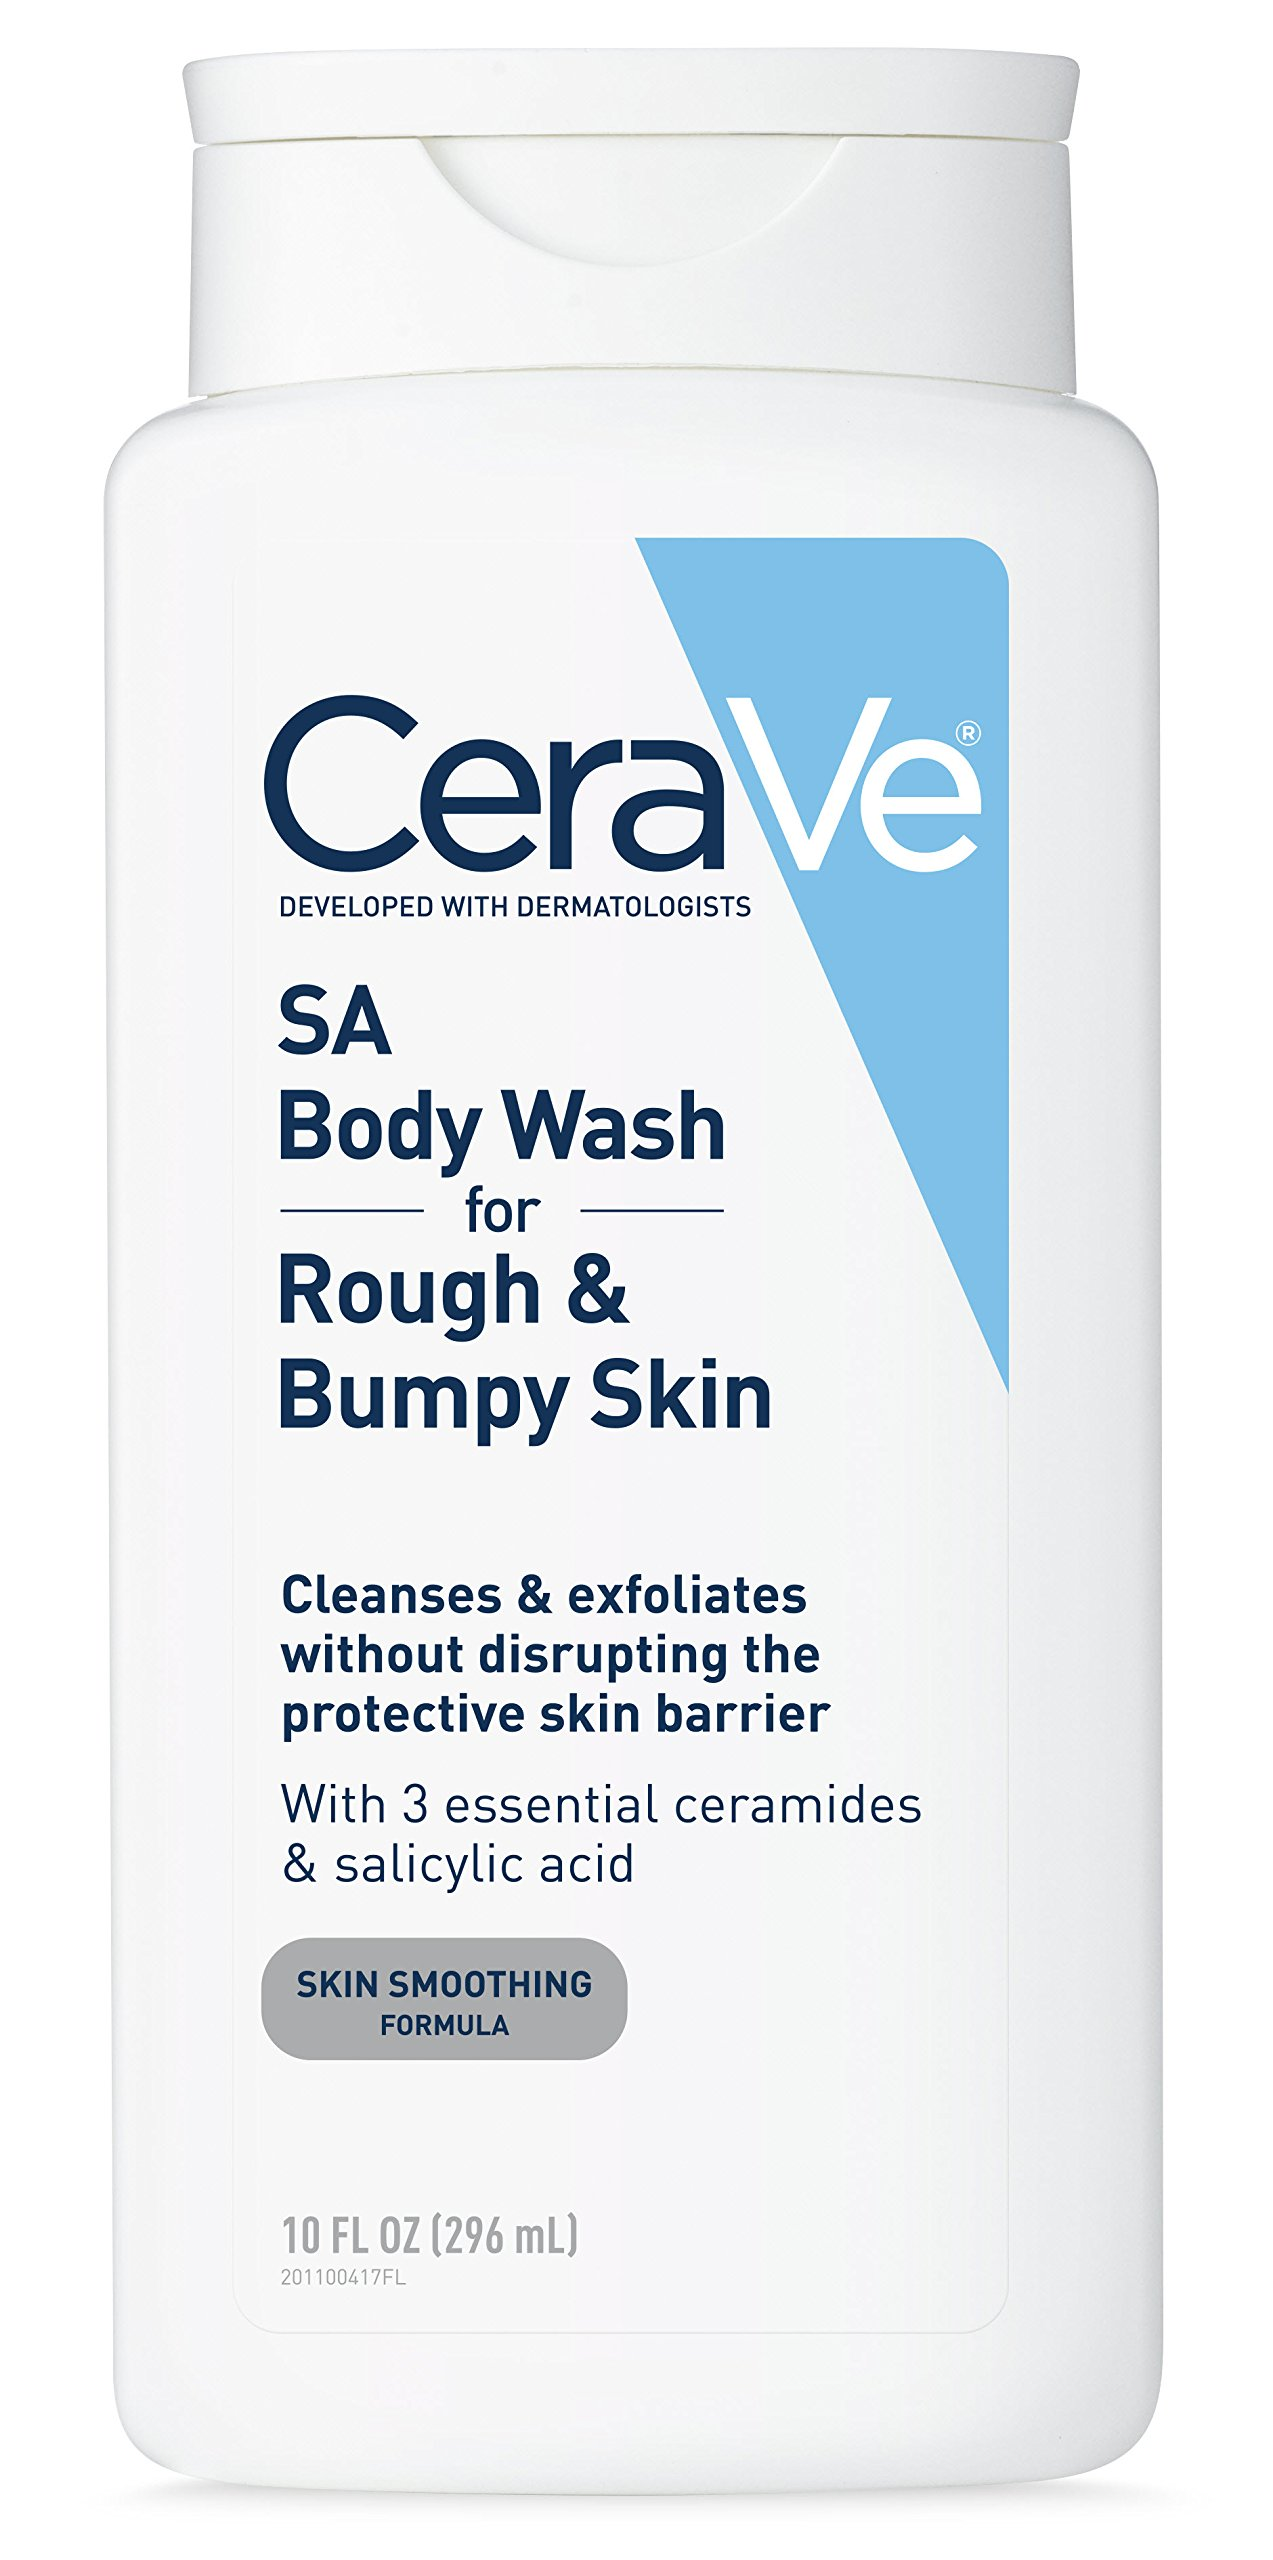 CeraVe Body Wash with Salicylic Acid | 10 Ounce | Fragrance Free Body Wash to Exfoliate Rough and Bumpy Skin by CeraVe